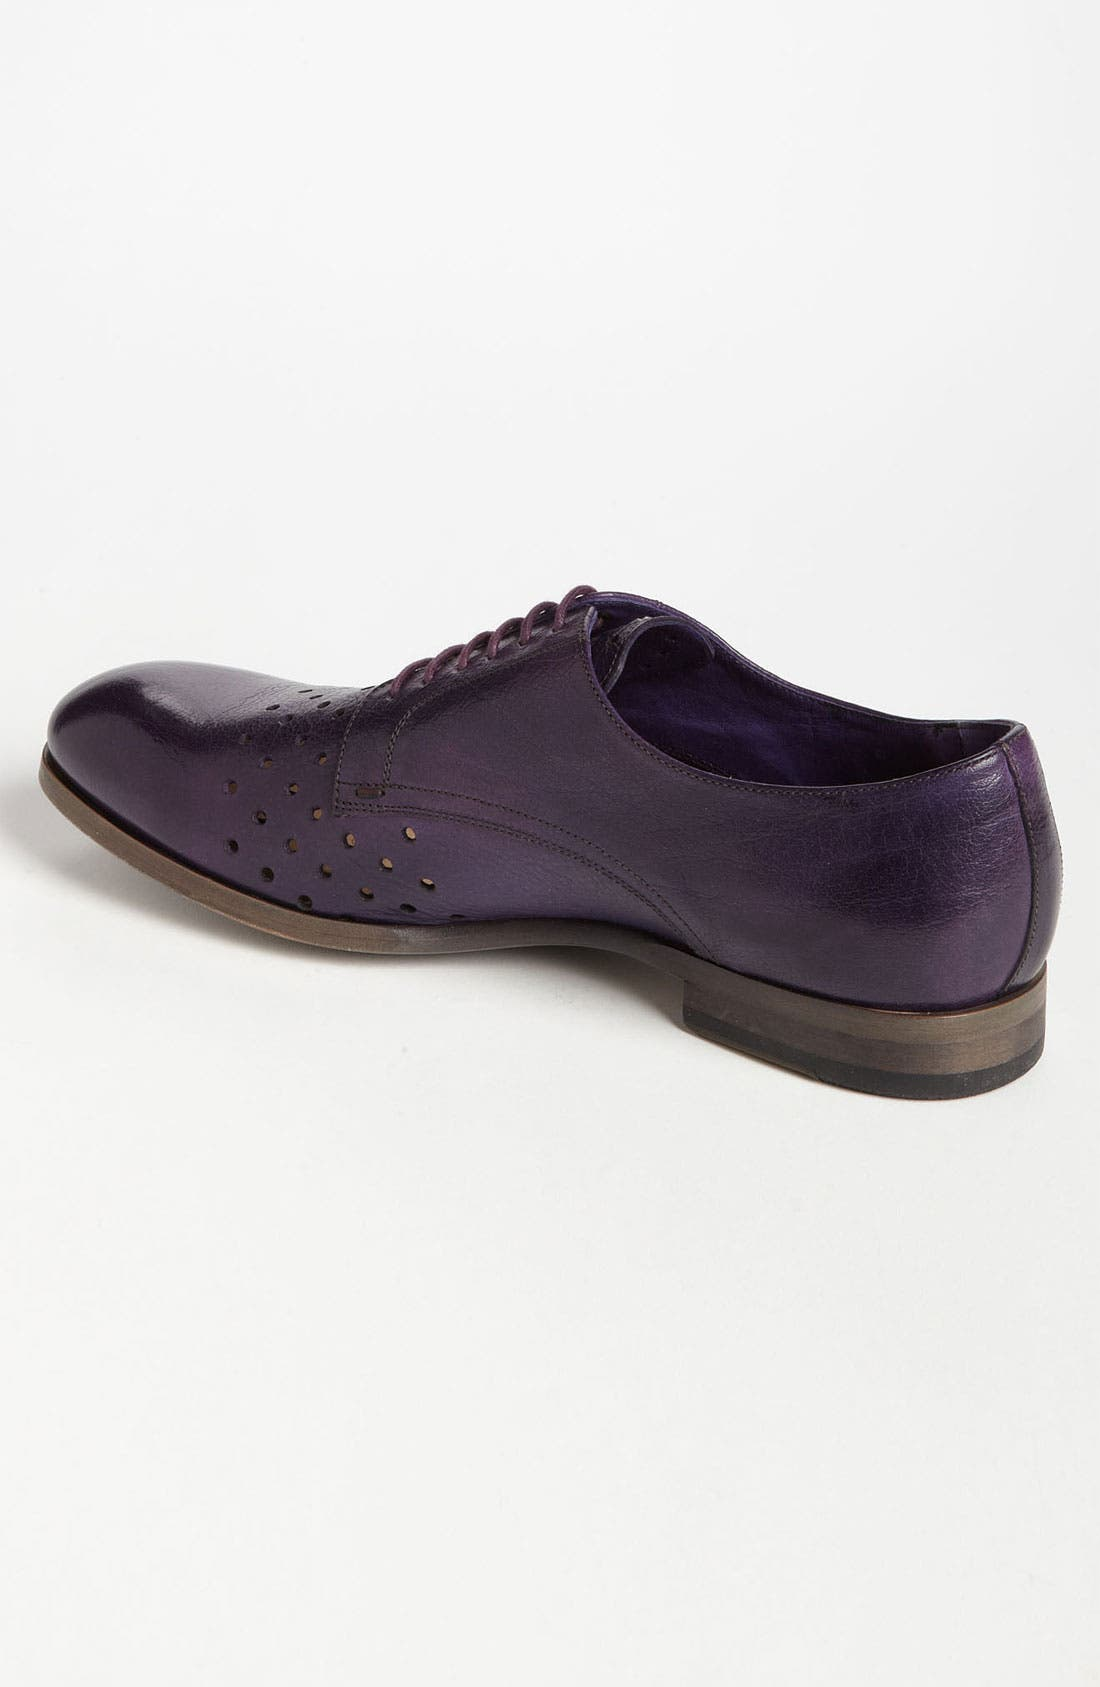 Alternate Image 2  - Paul Smith 'Seagul' Perforated Derby